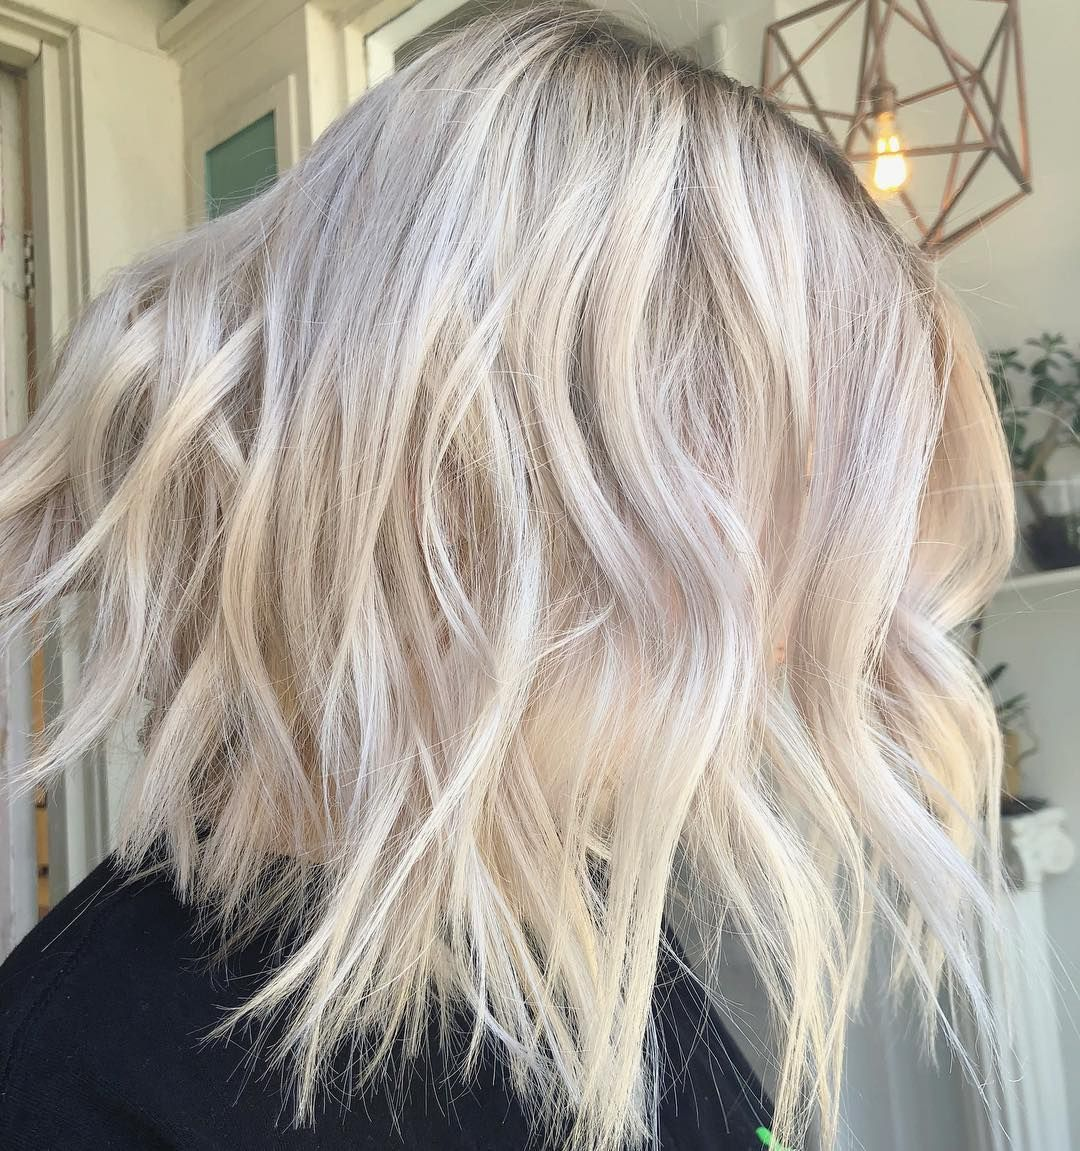 9v 9p With 1 4 Clear 10 Min Cool Blonde Long Hair Styles